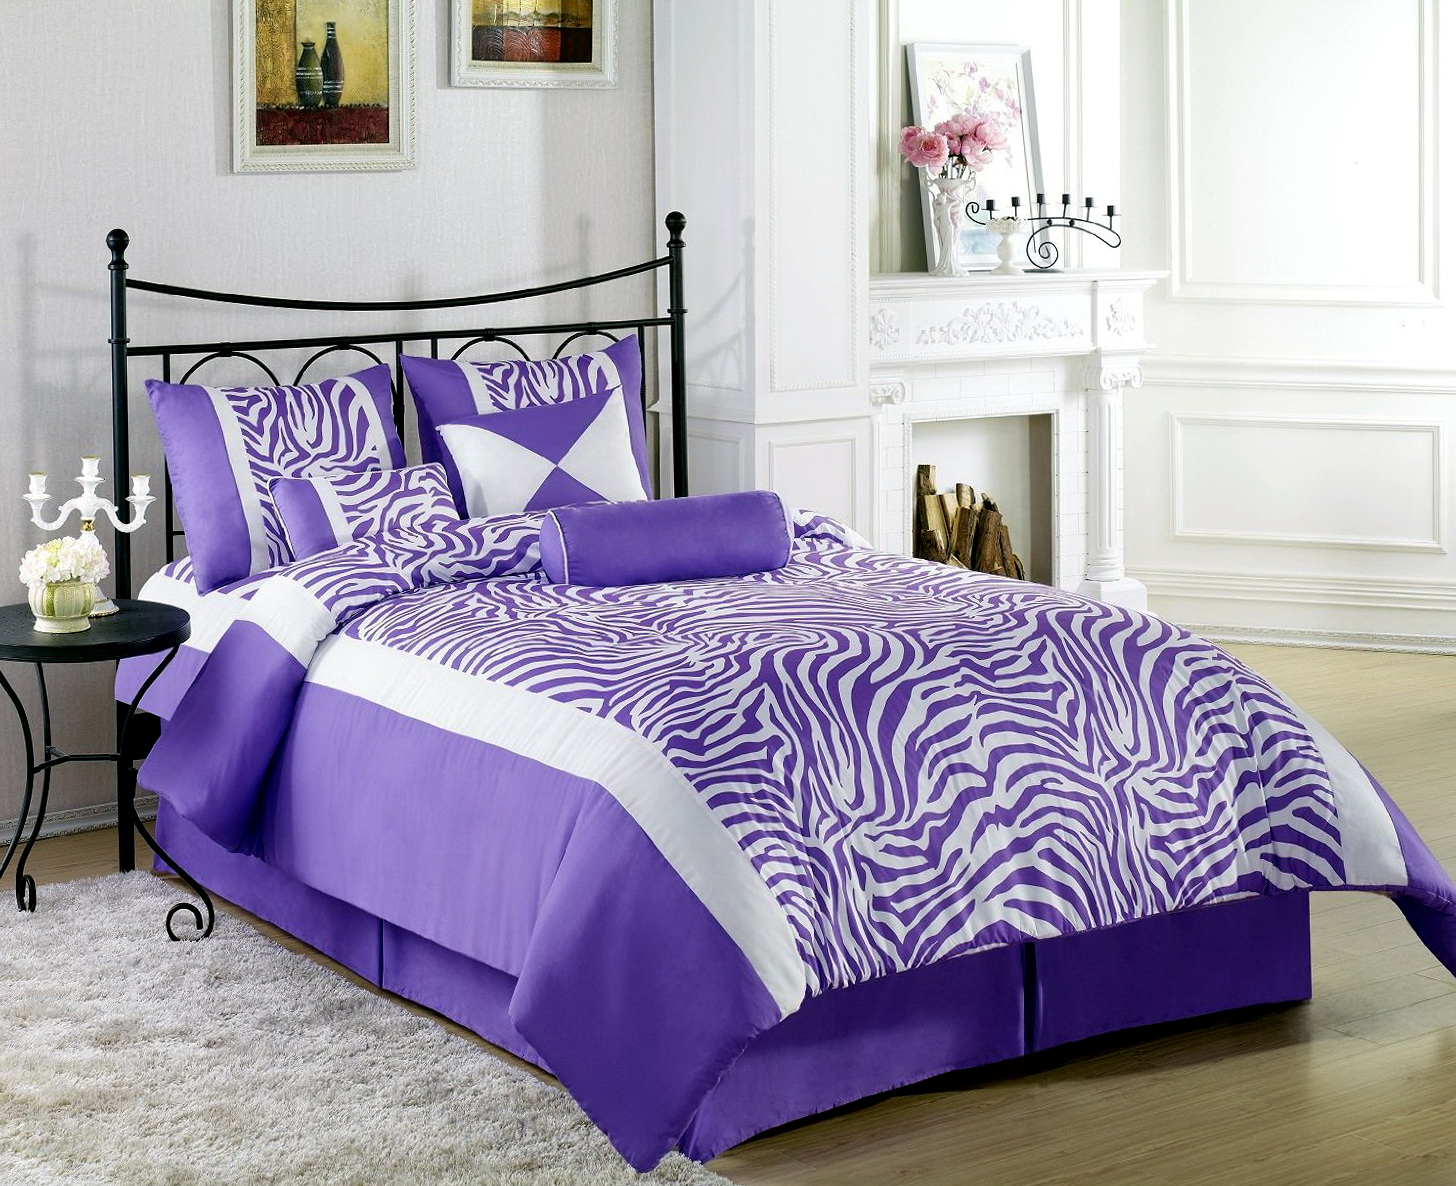 Purple Zebra Bedroom Decor